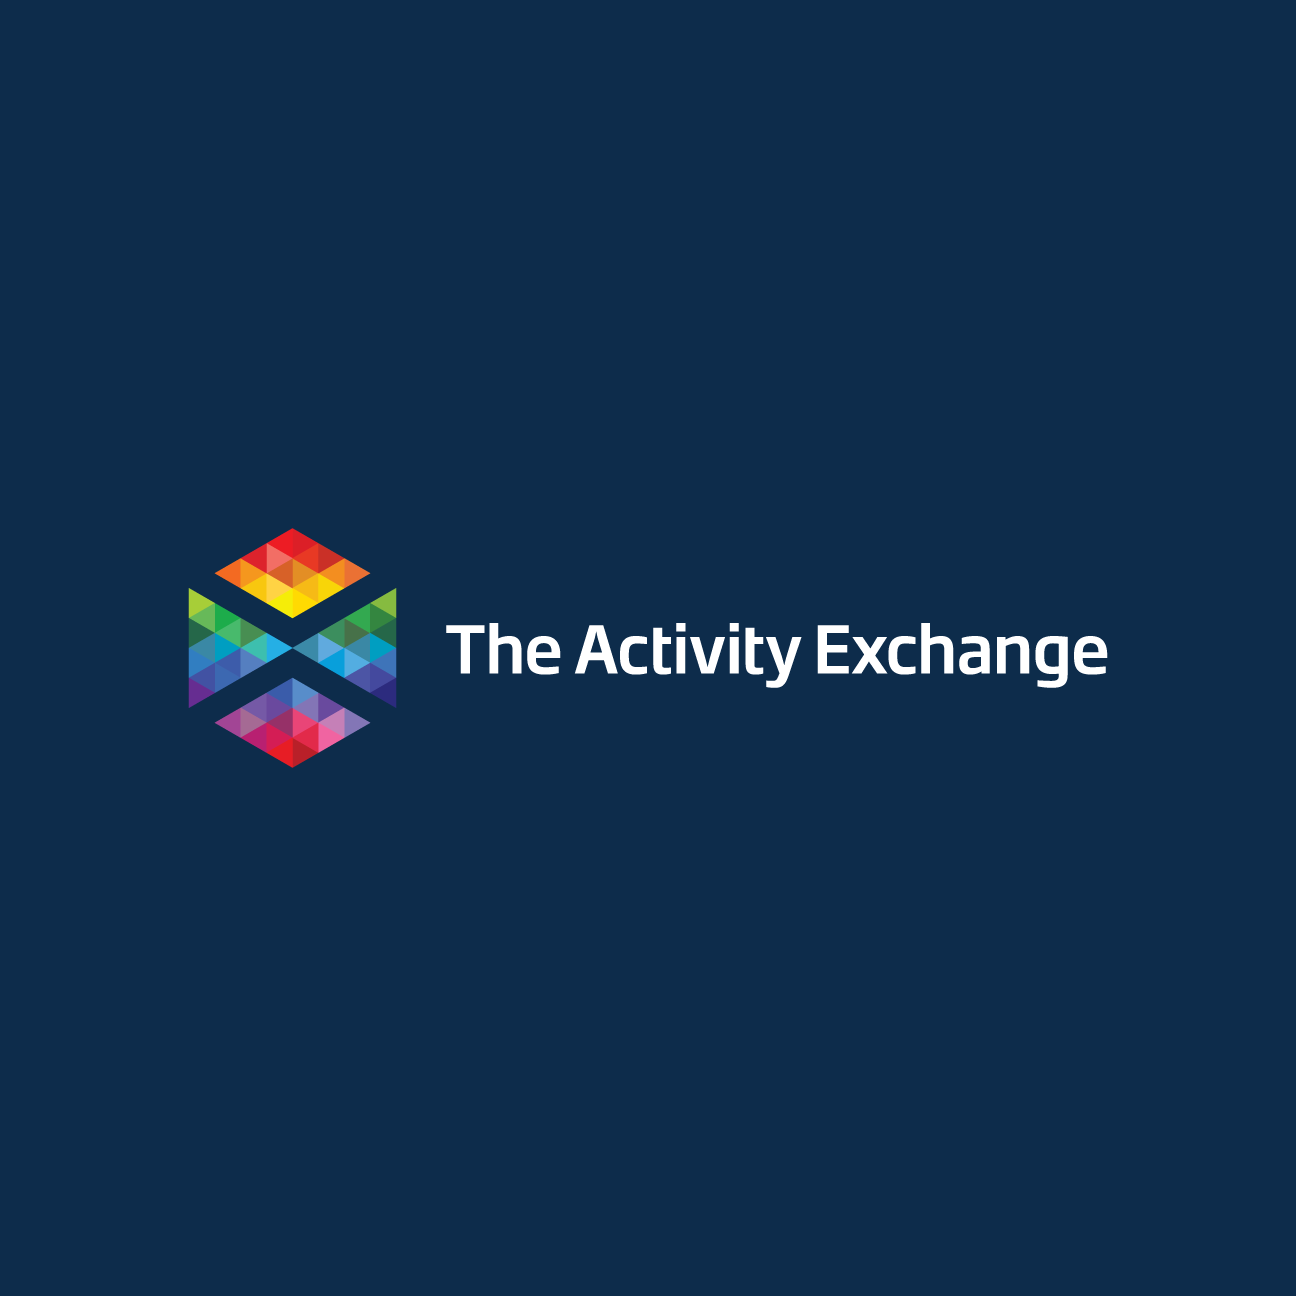 The Activity Exchange Logo